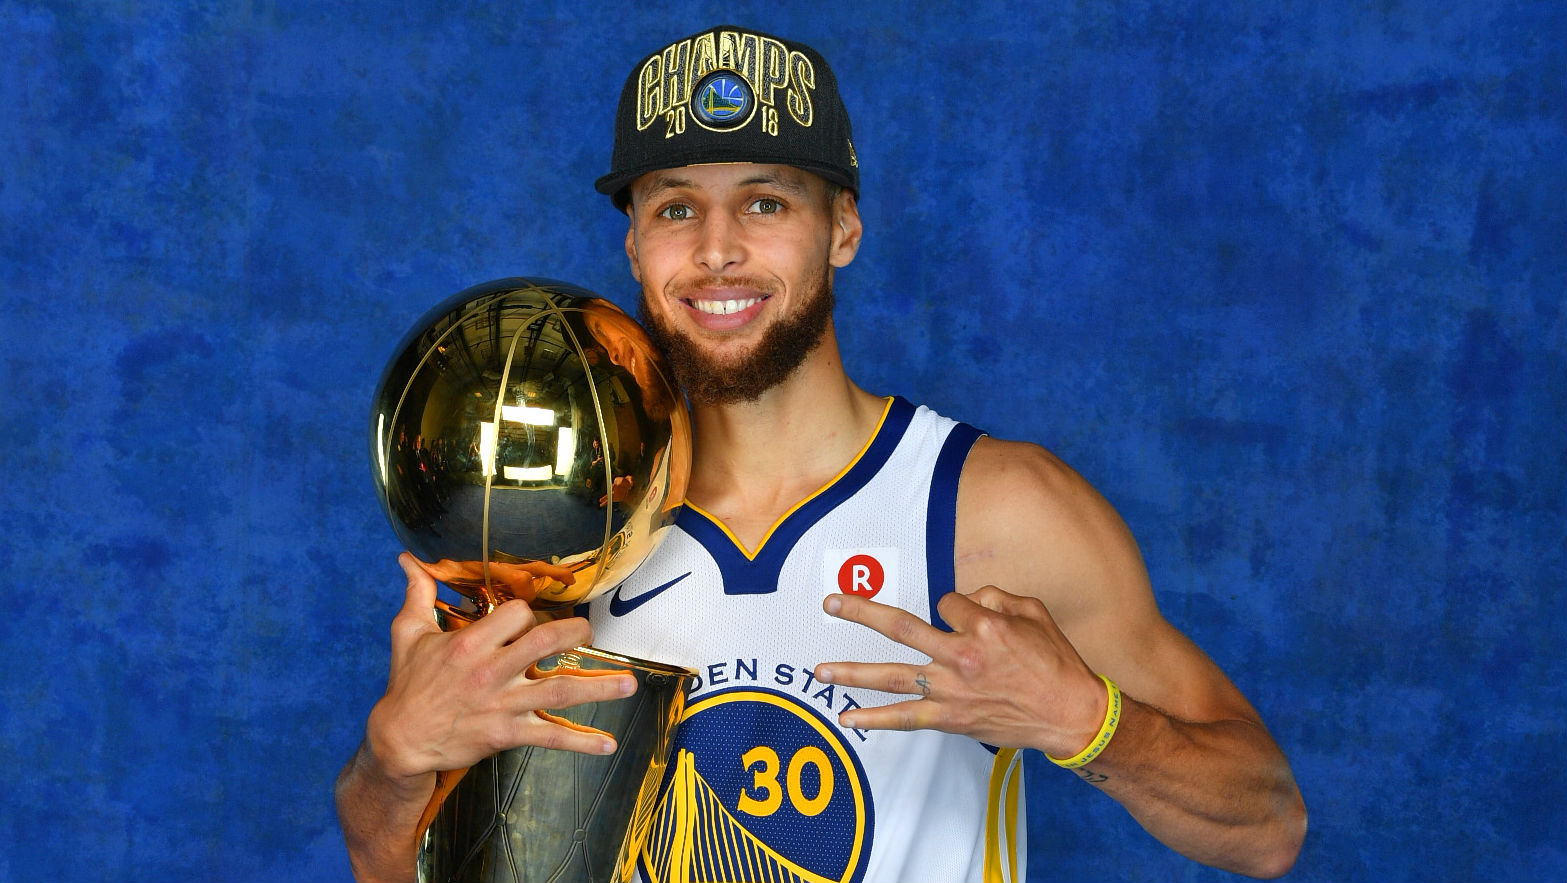 decd9d4ca7c Stephen Curry s 10 career defining moments